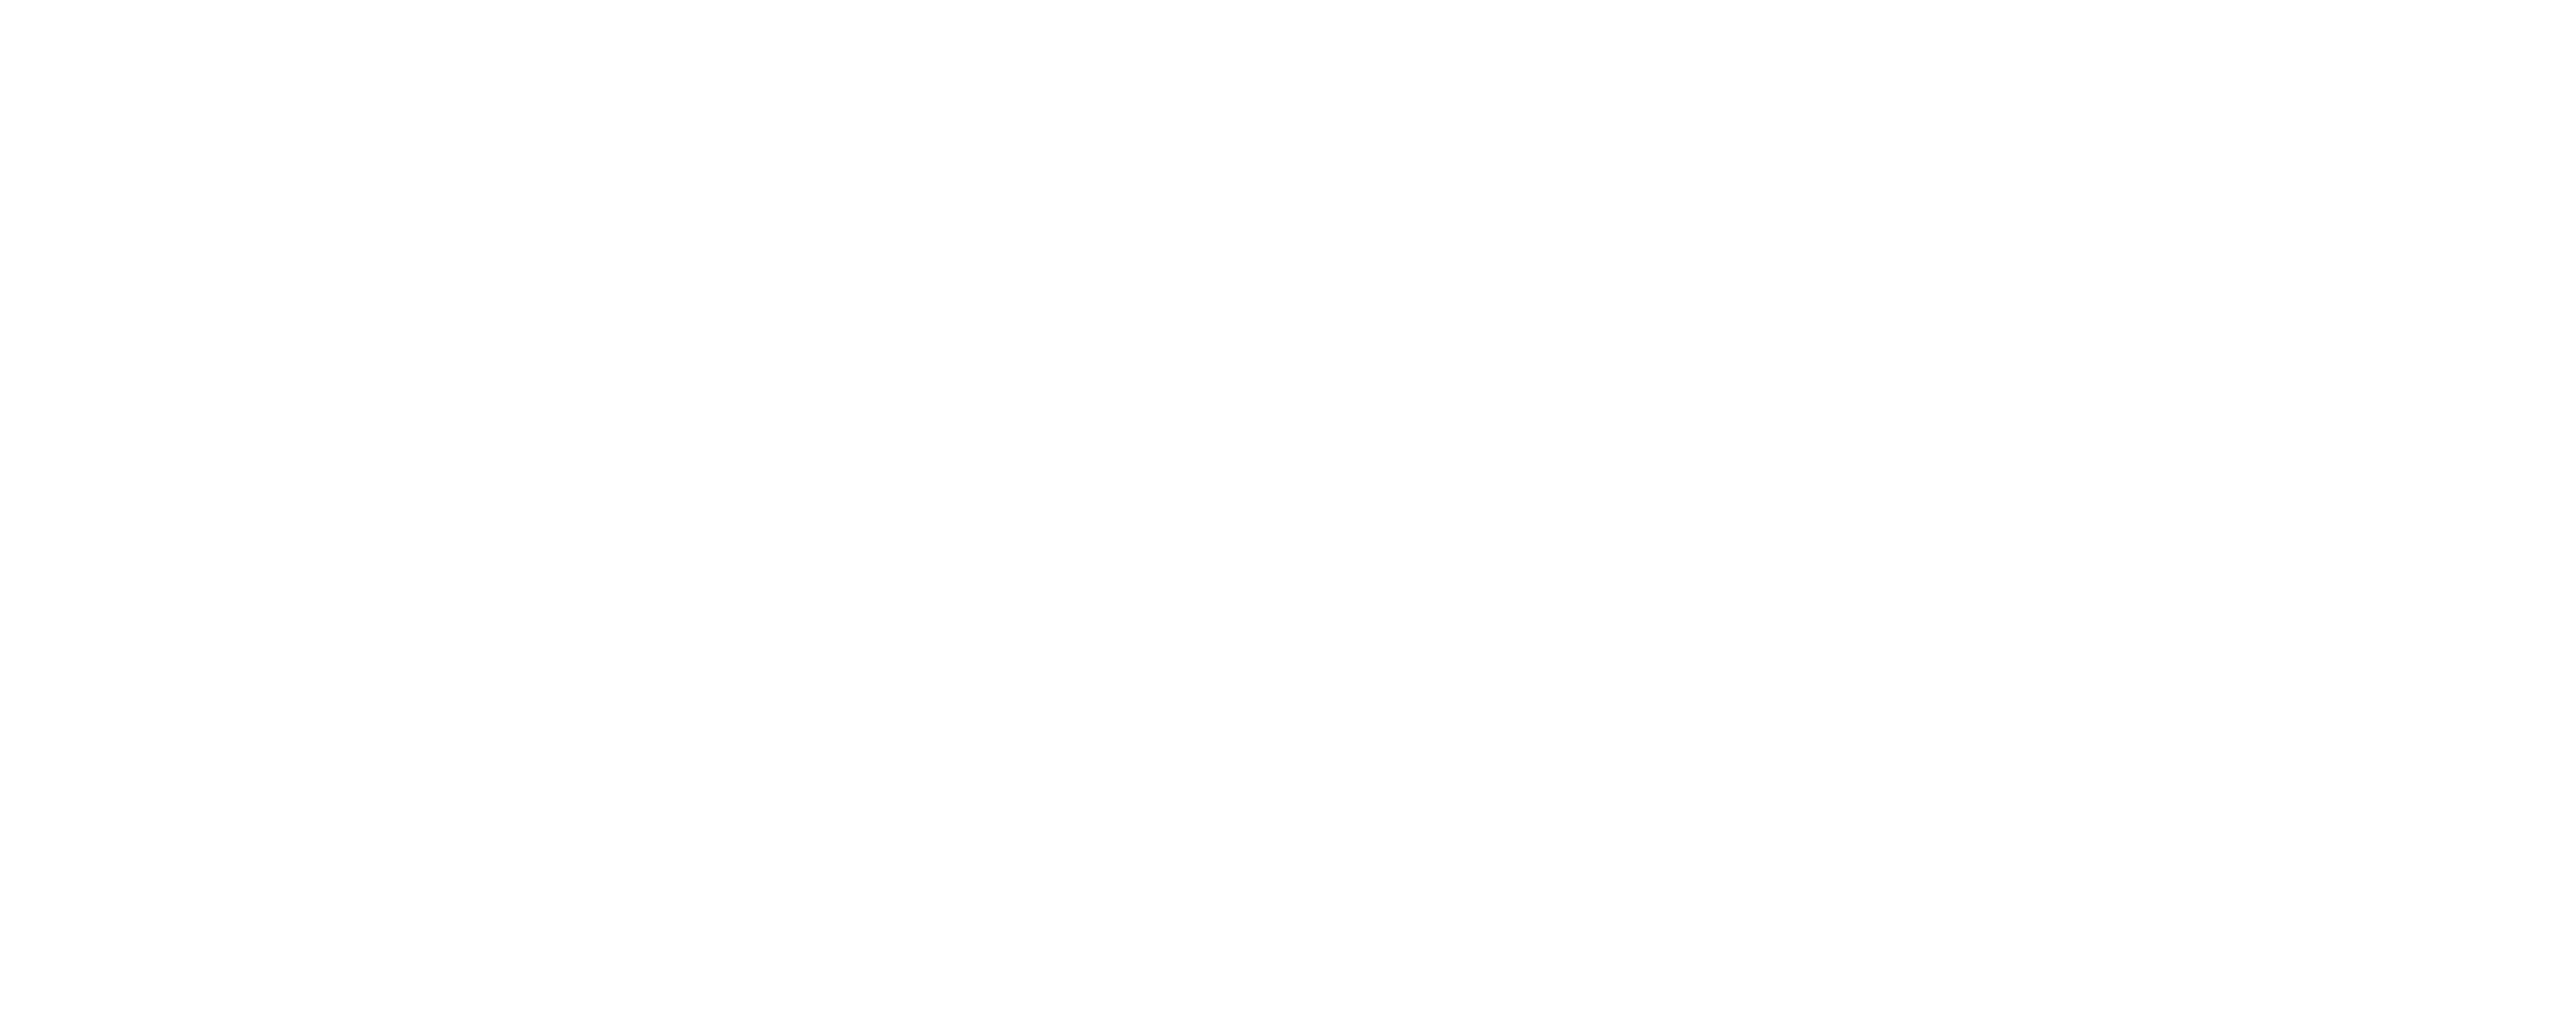 Ashley Sherlock Band